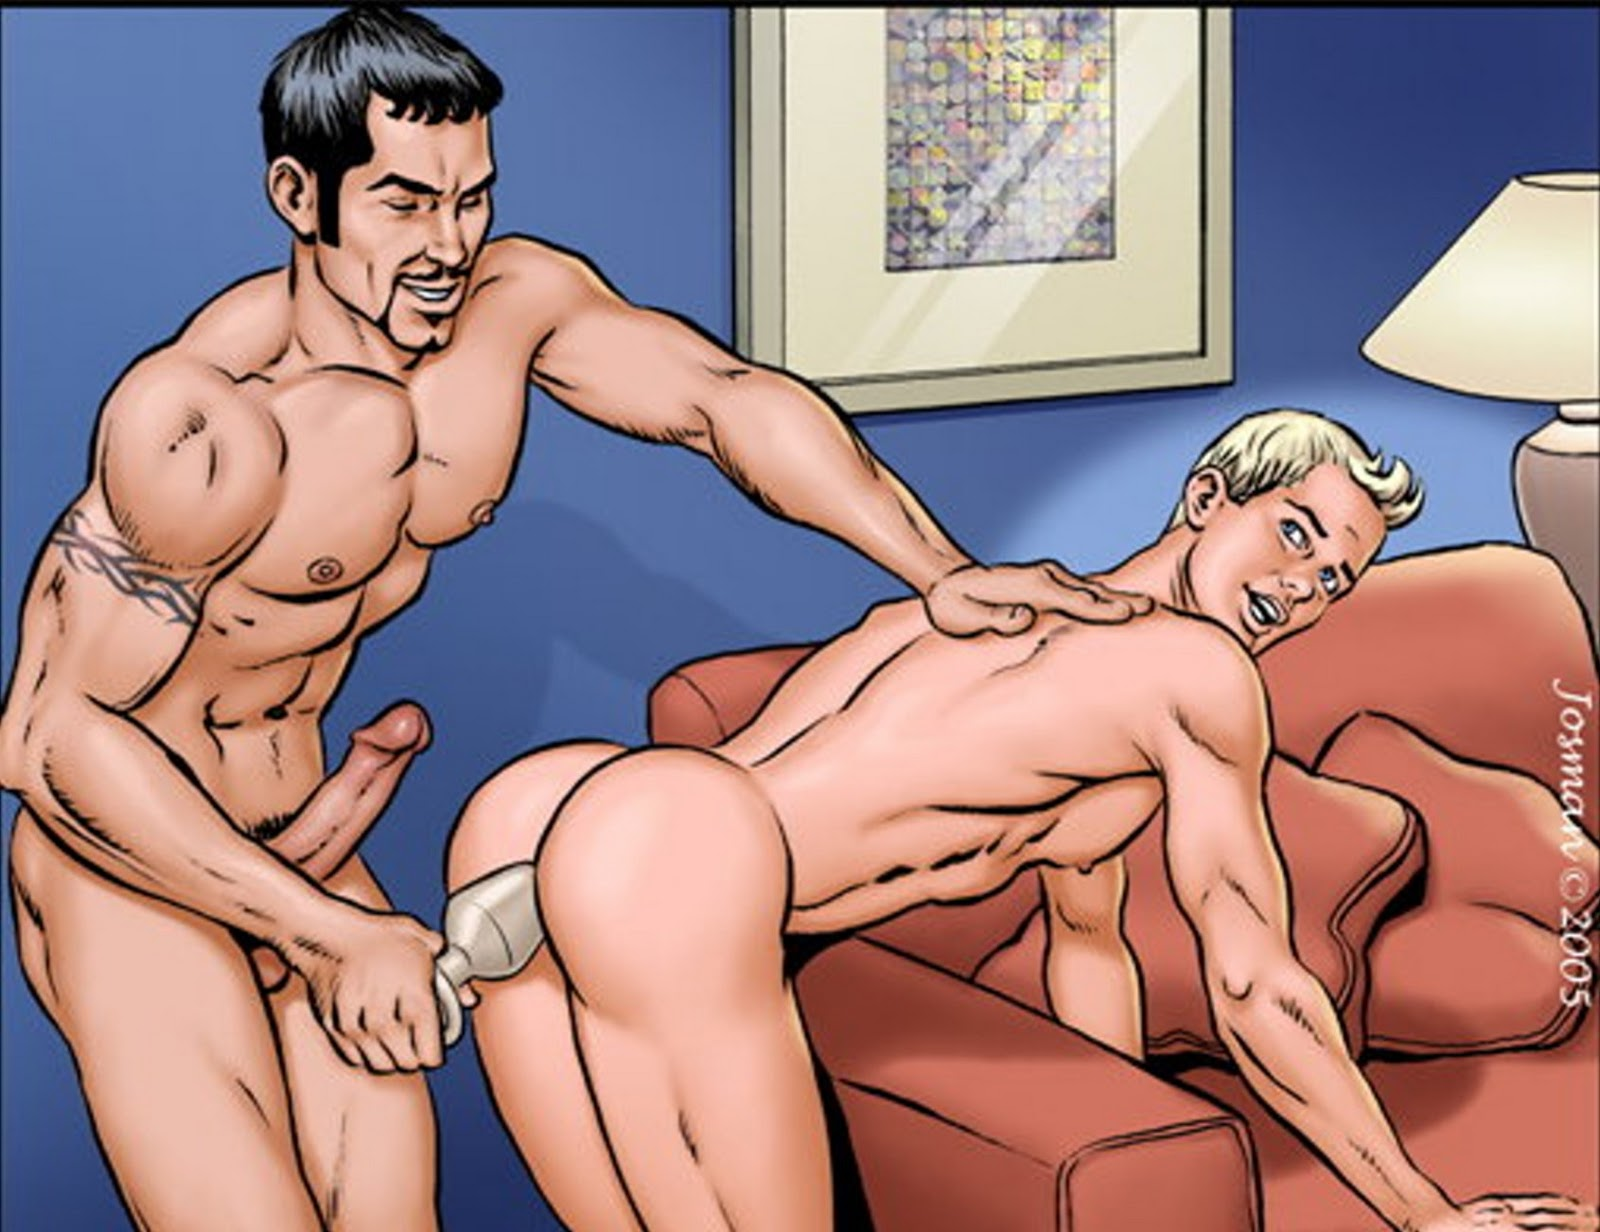 Cartoon sexporn xxx galleries